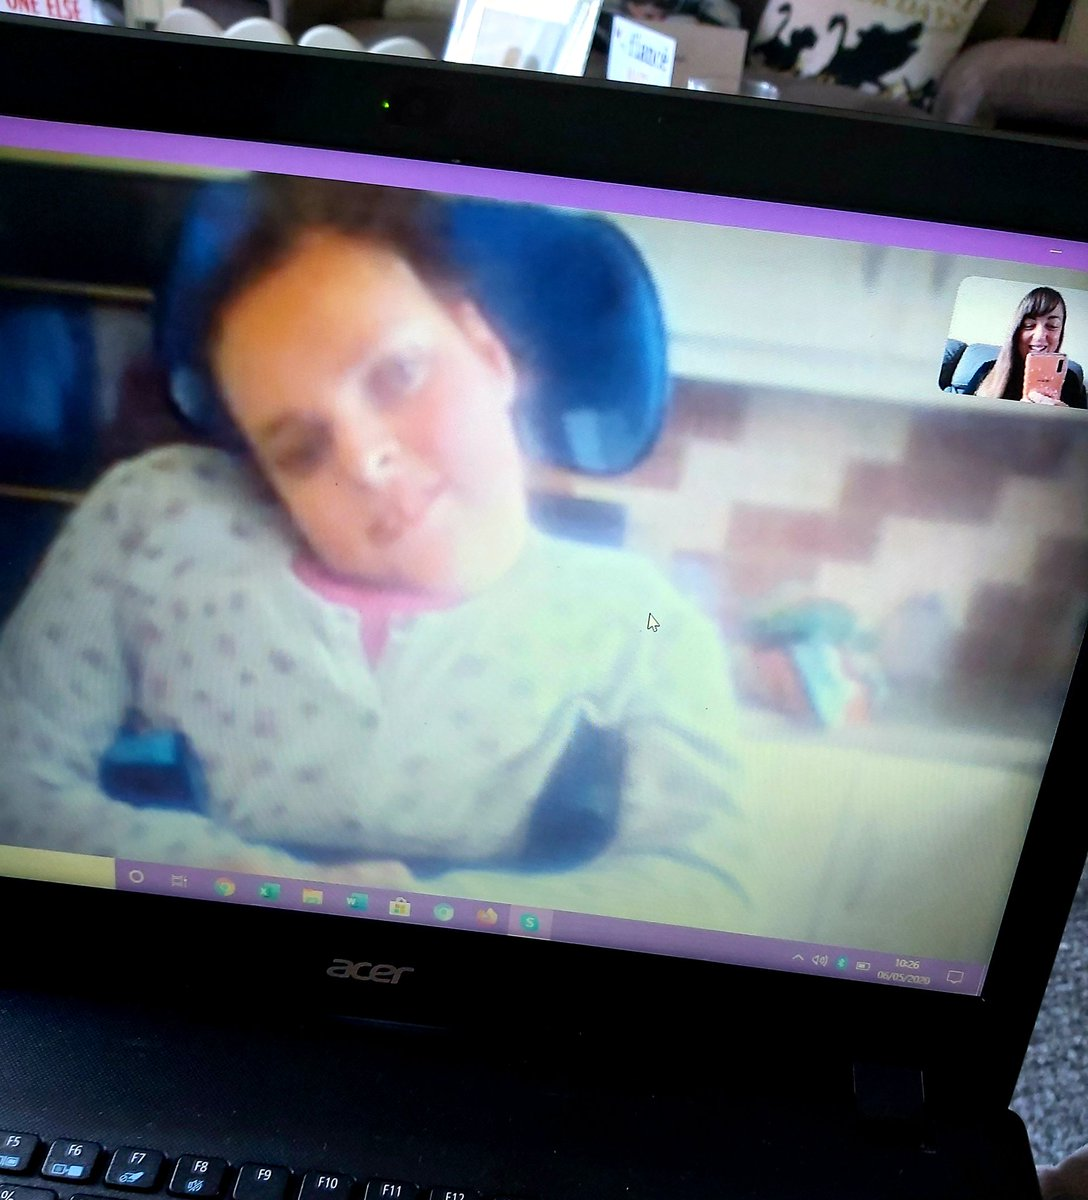 Occupational balance can be tricky when working from home 5 days a week so I took half an hour out of my work schedule to skype the most important person in my life 💞 it helped to give me some balance back (despite missing her terribly) #OccupationalTherapist #StayHome